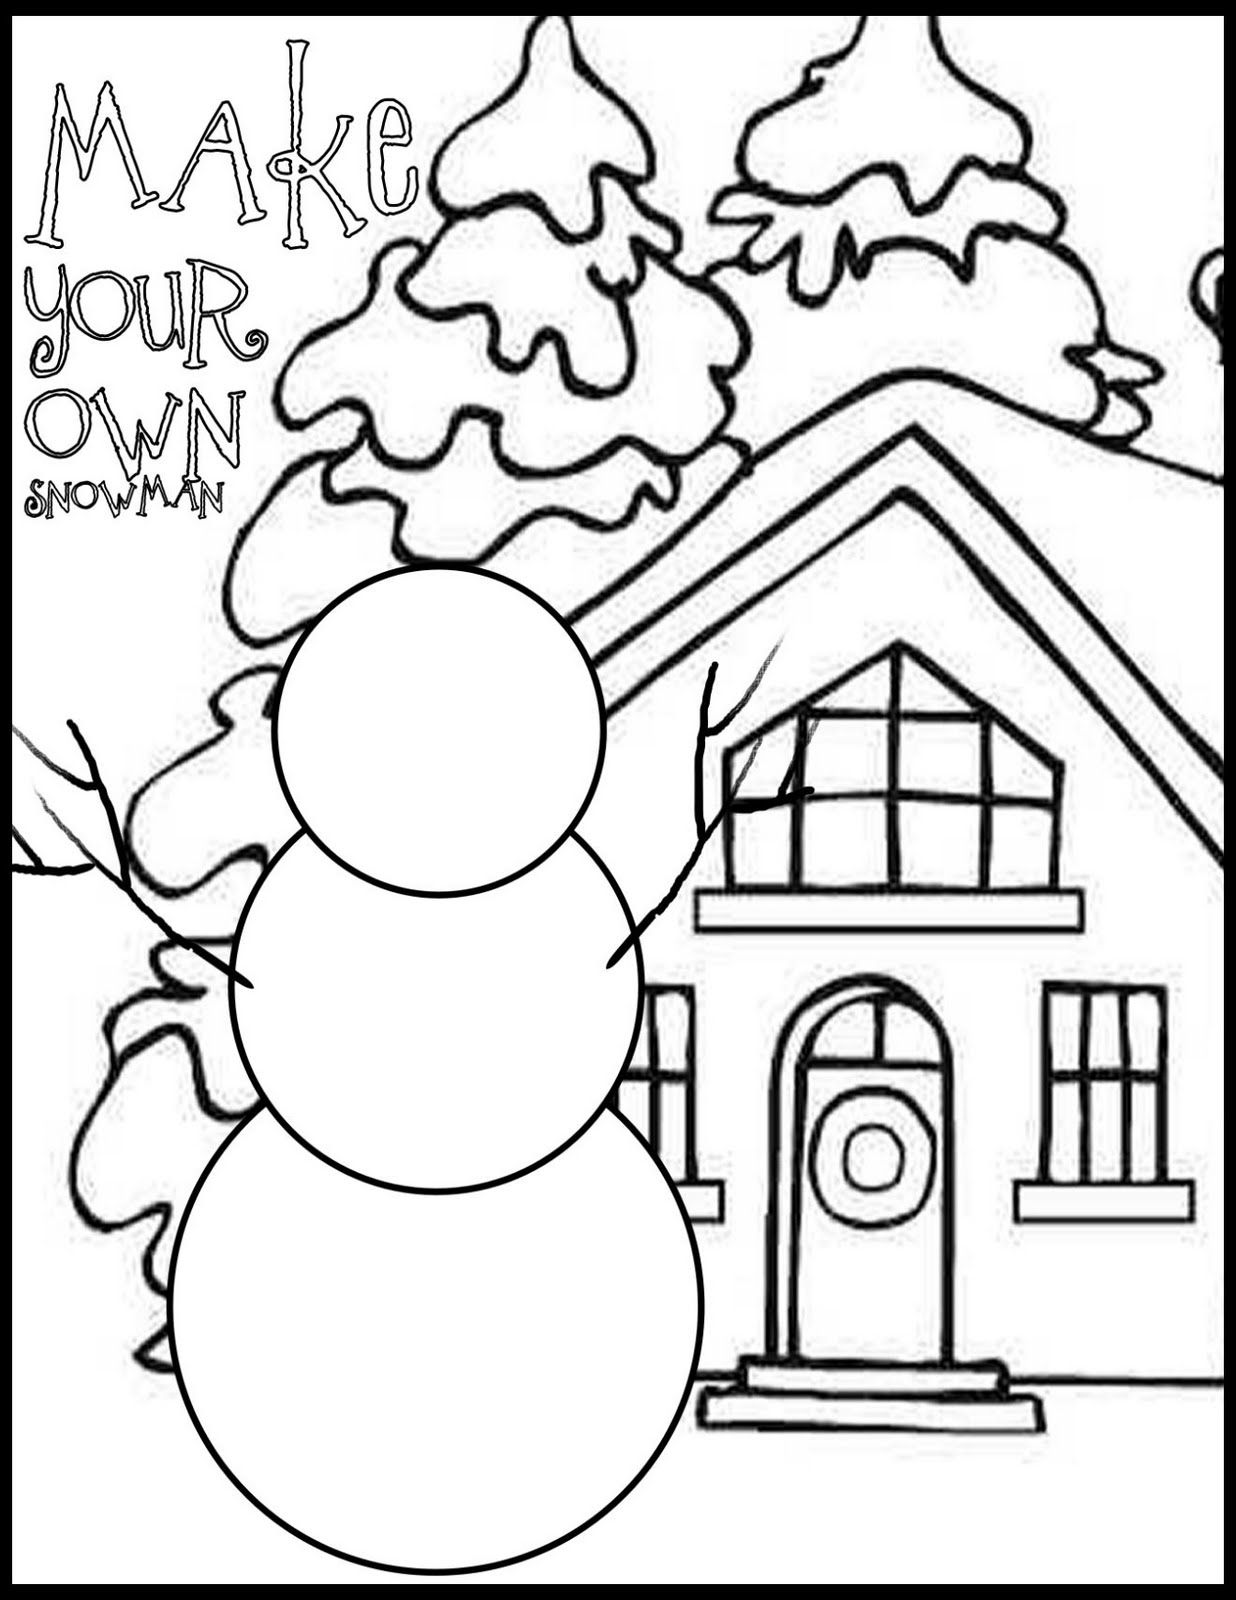 Christmas Coloring Pages For Mom With Draw Your Own Snowman Page Pinterest